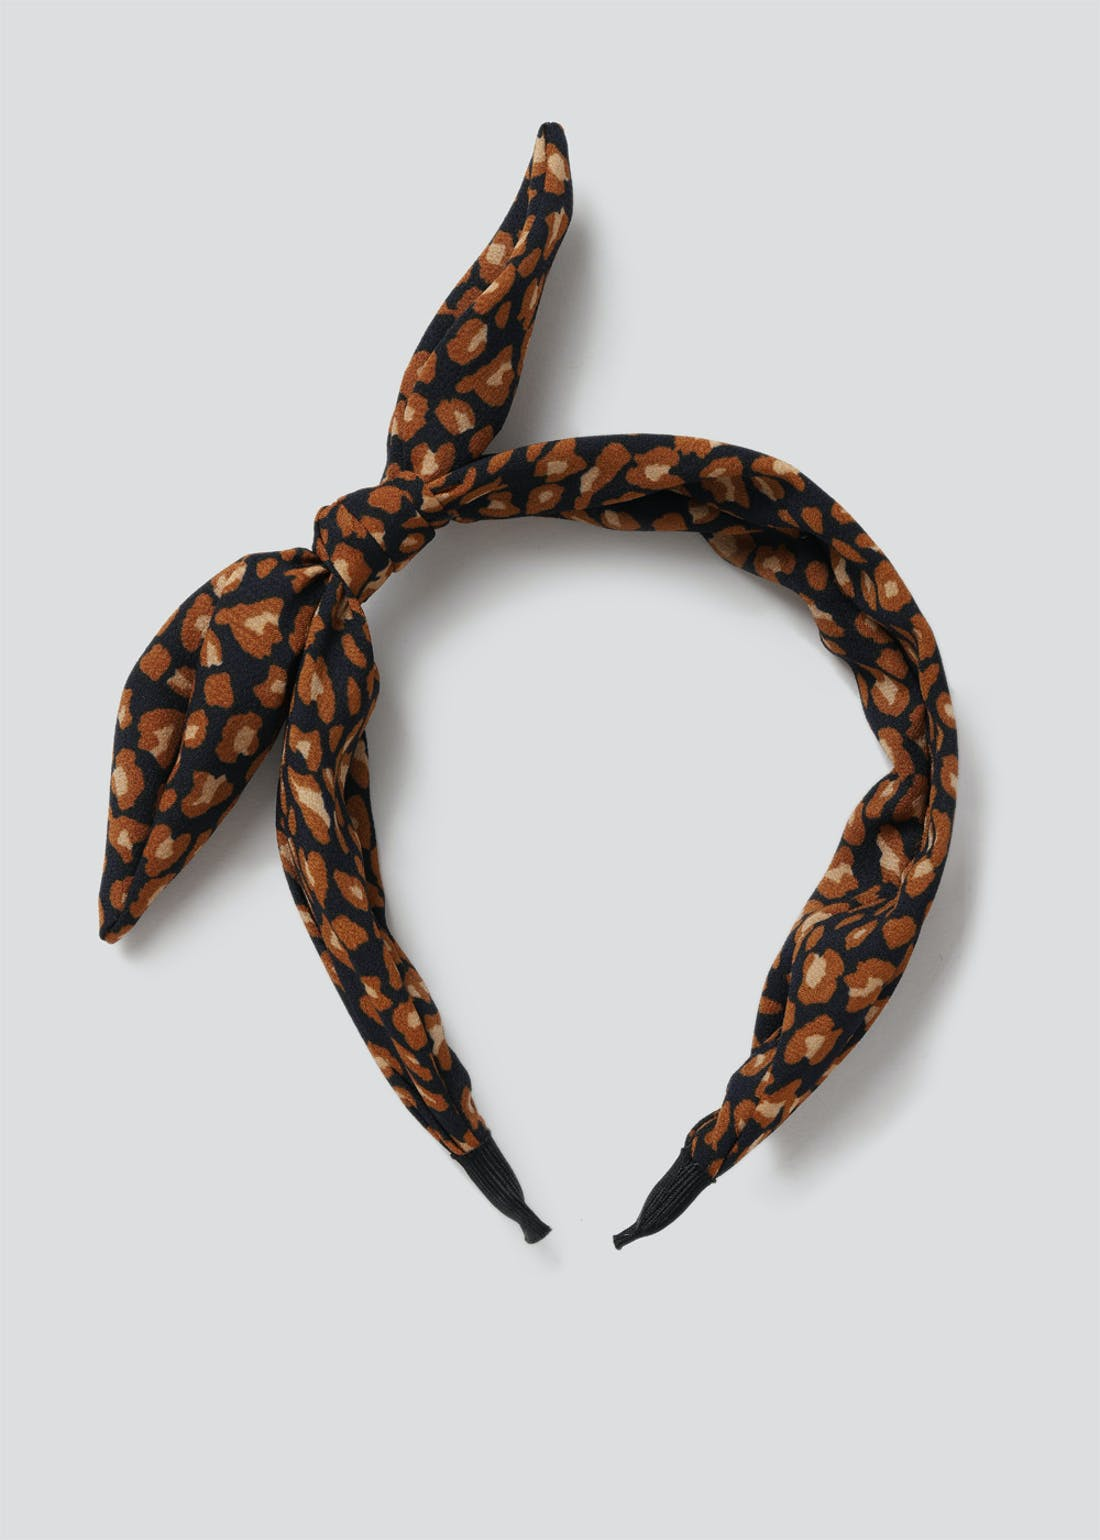 Leopard Bow Alice Band.